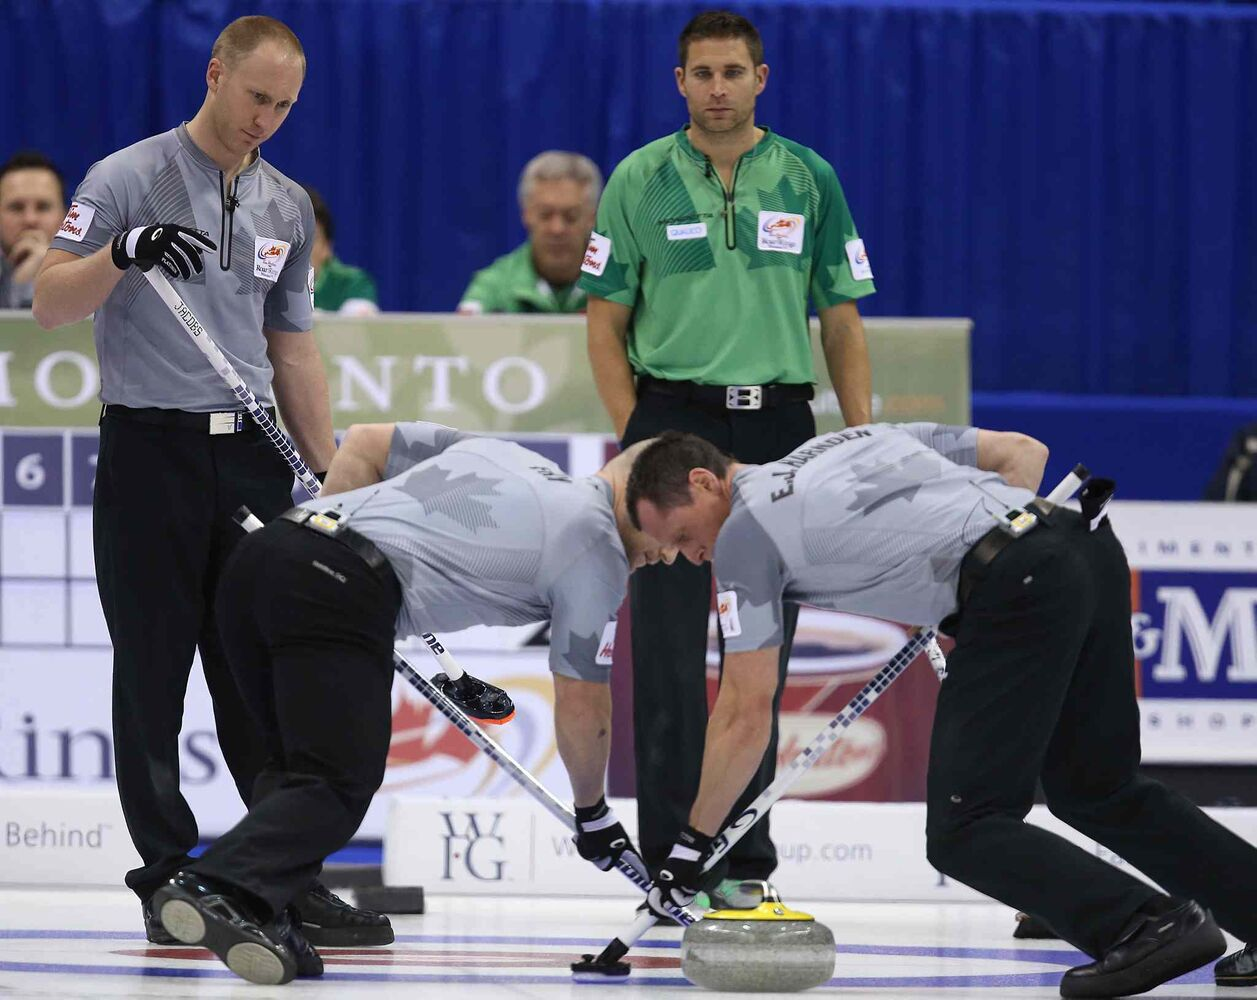 Skip Brad Jacobs (left) watches a shot during action against John Morris (centre). (Jason Halstead / Winnipeg Free Press)